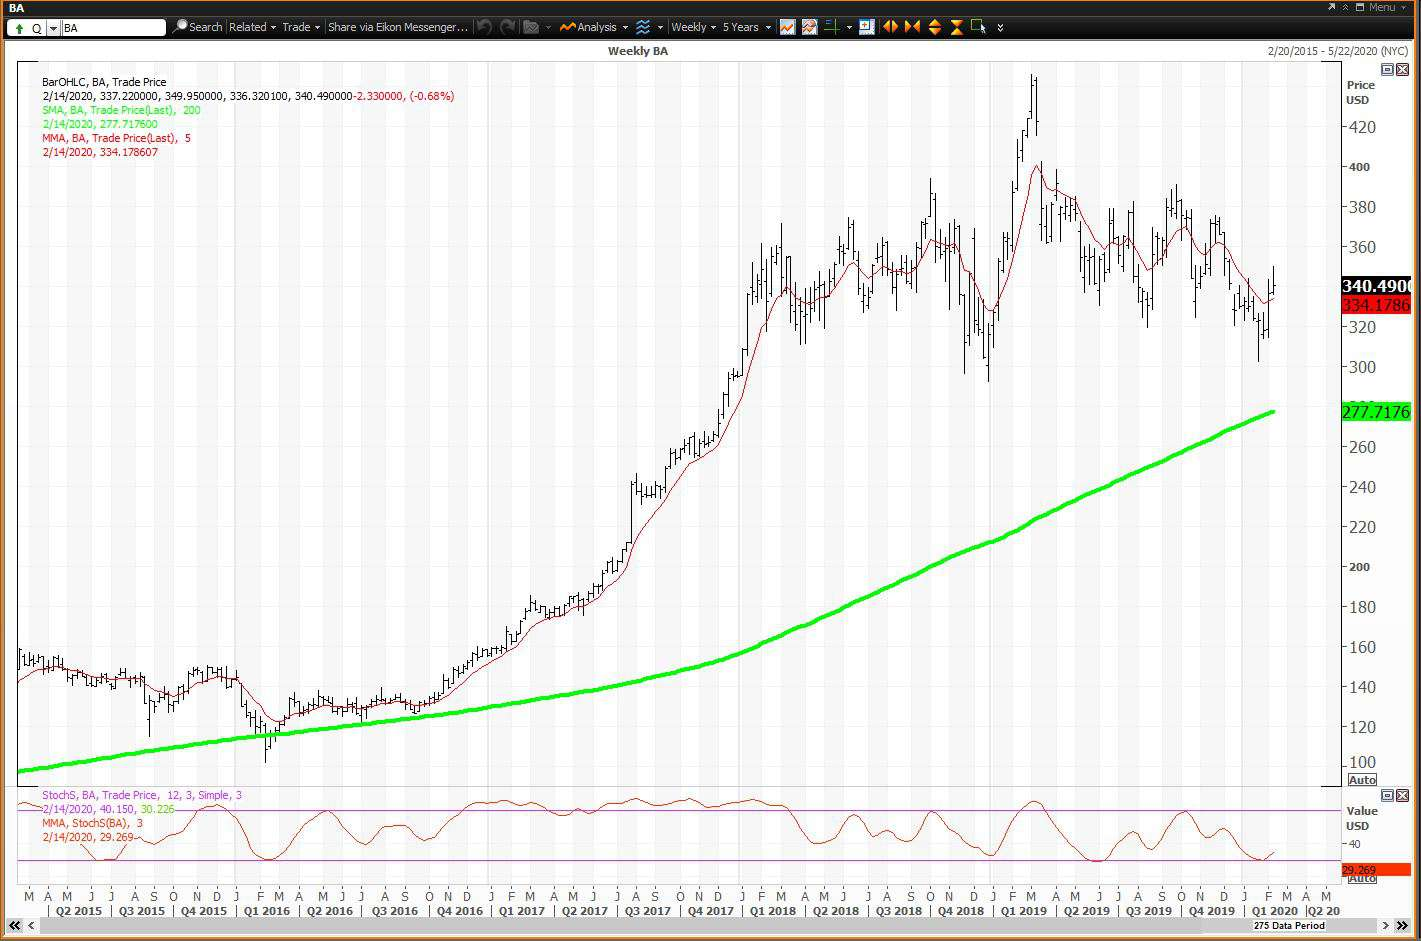 Weekly chart showing the share price performance of The Boeing Company (BA)